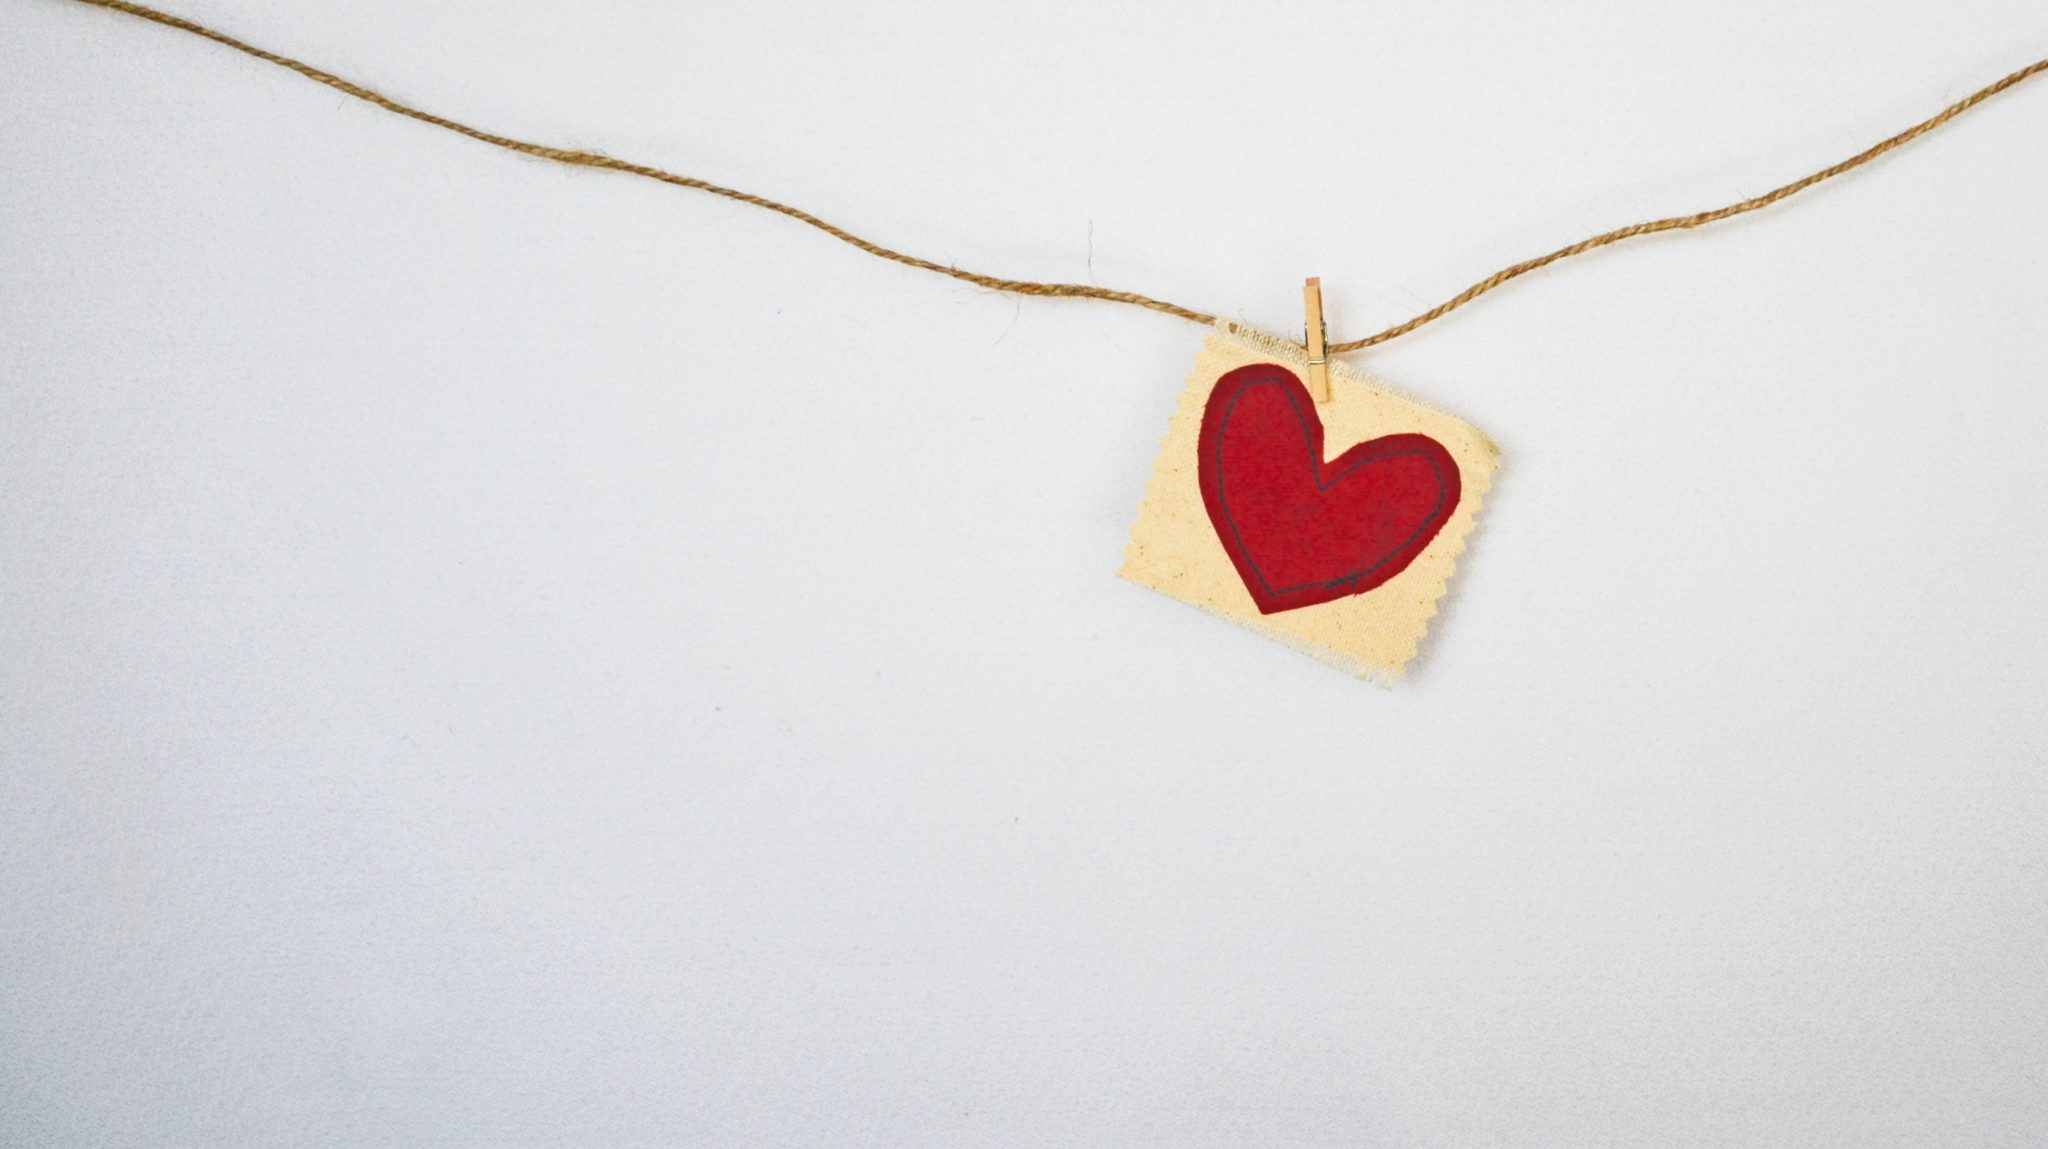 close up image of a red heart painting on a square canvas hanging from a rope against a white background